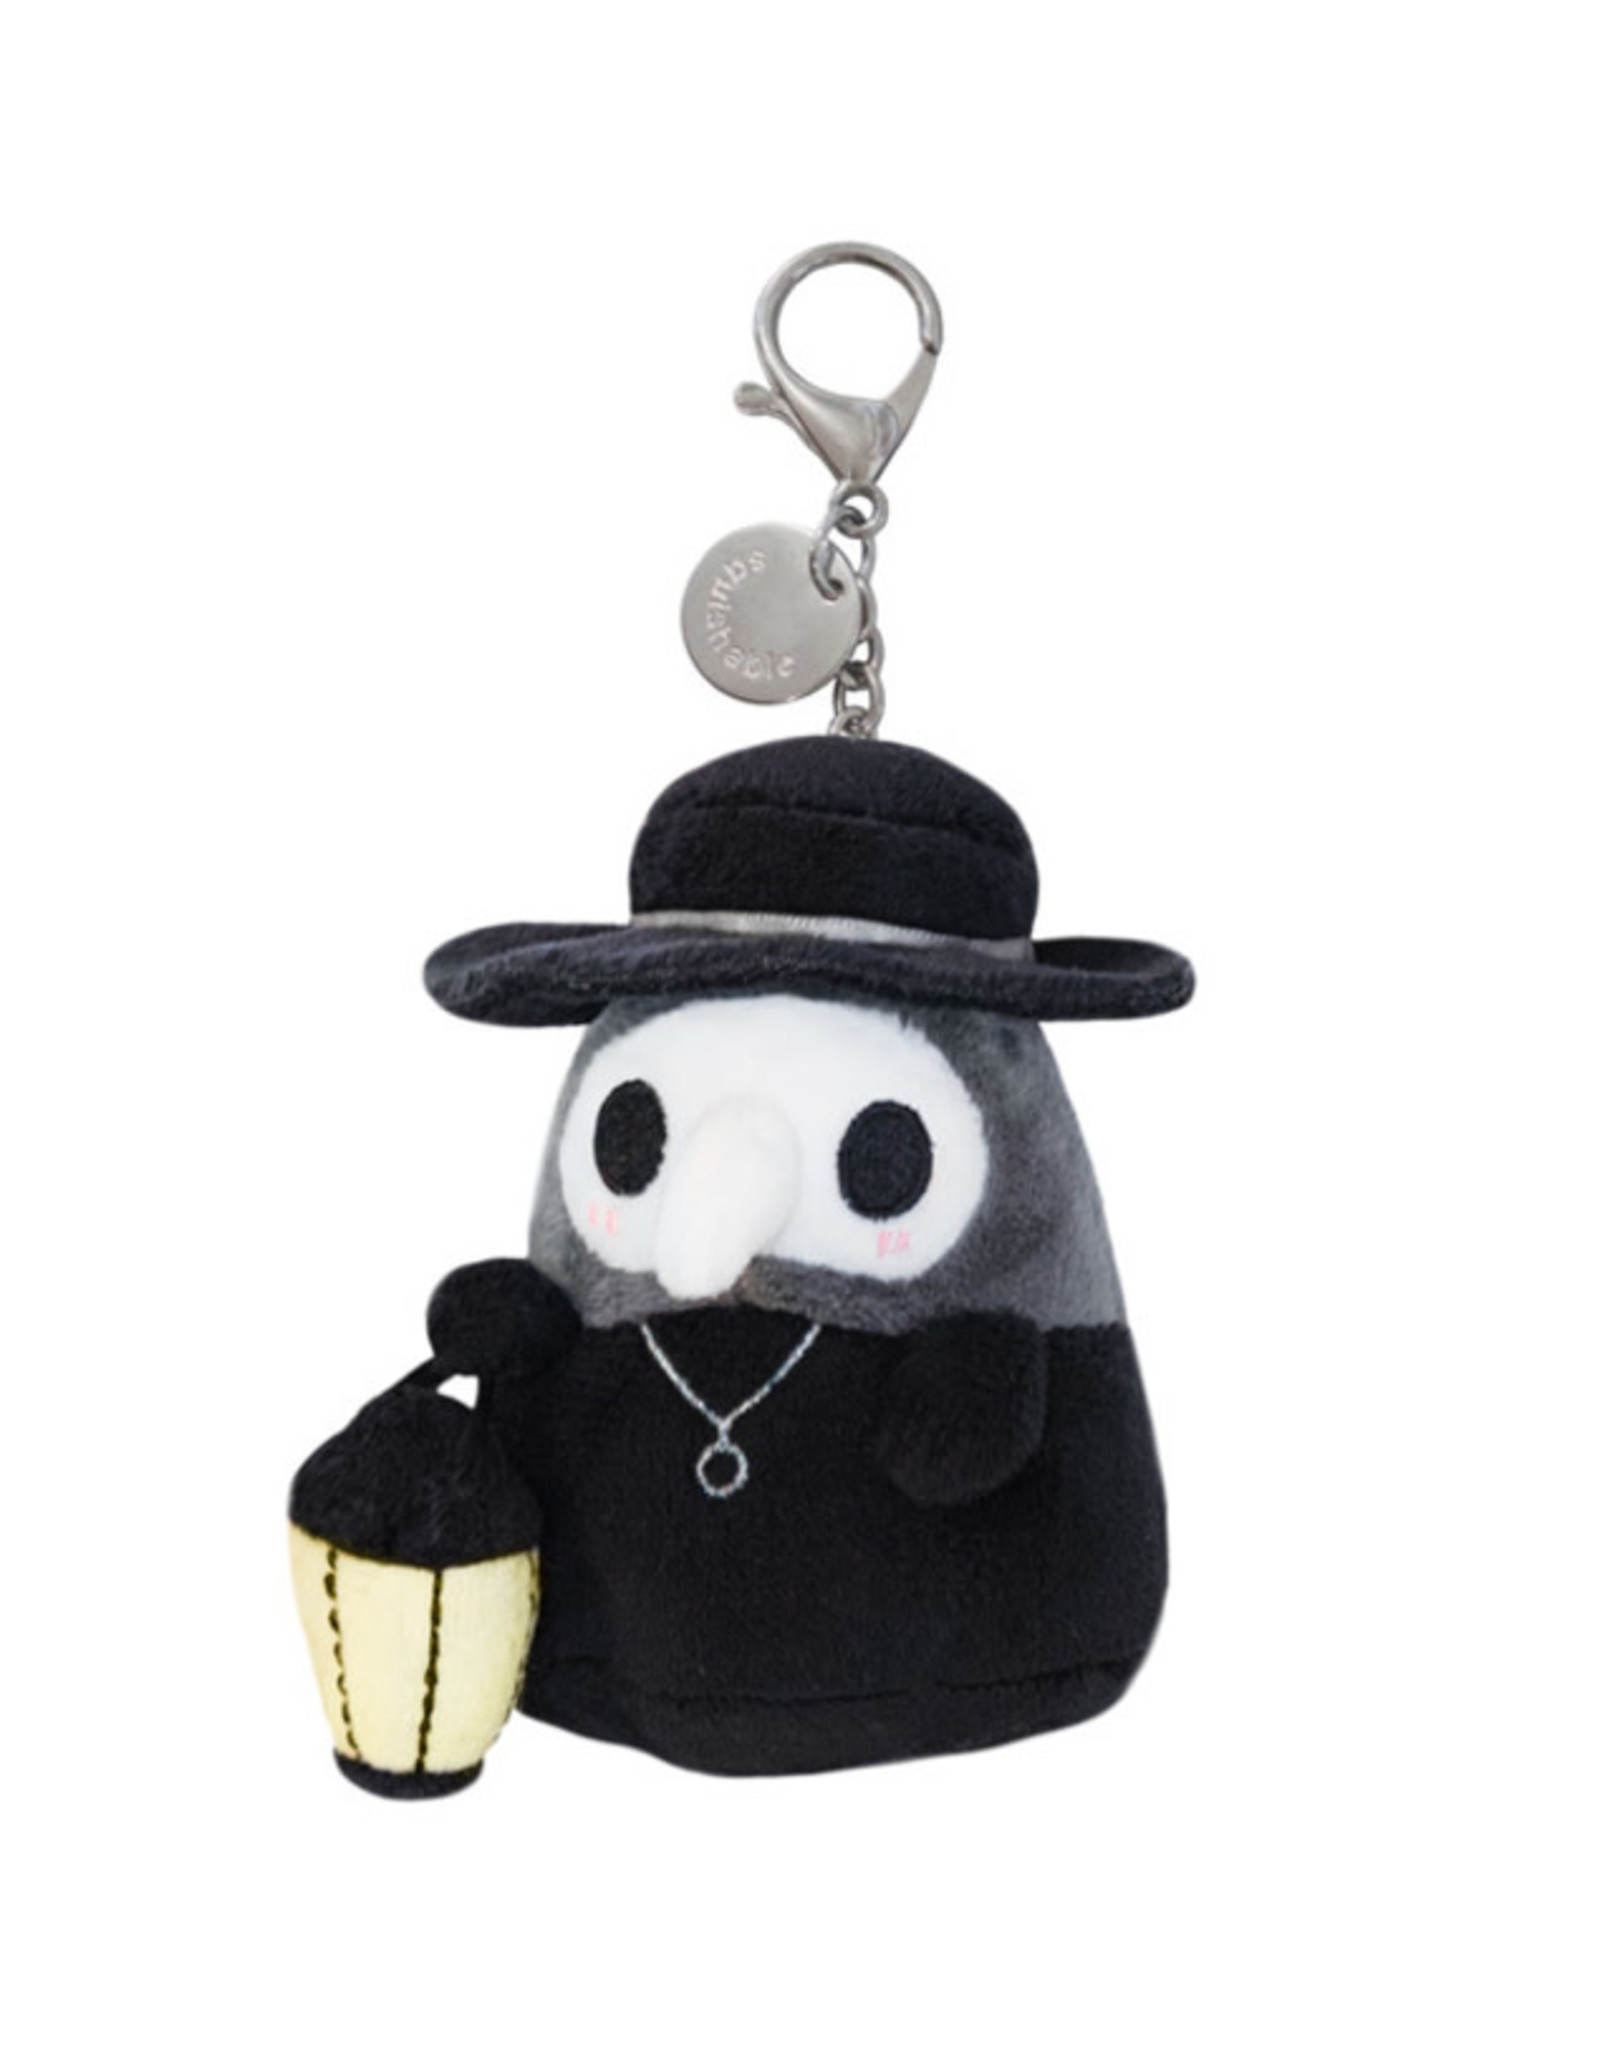 Squishable Micro Squishable Plague Doctor